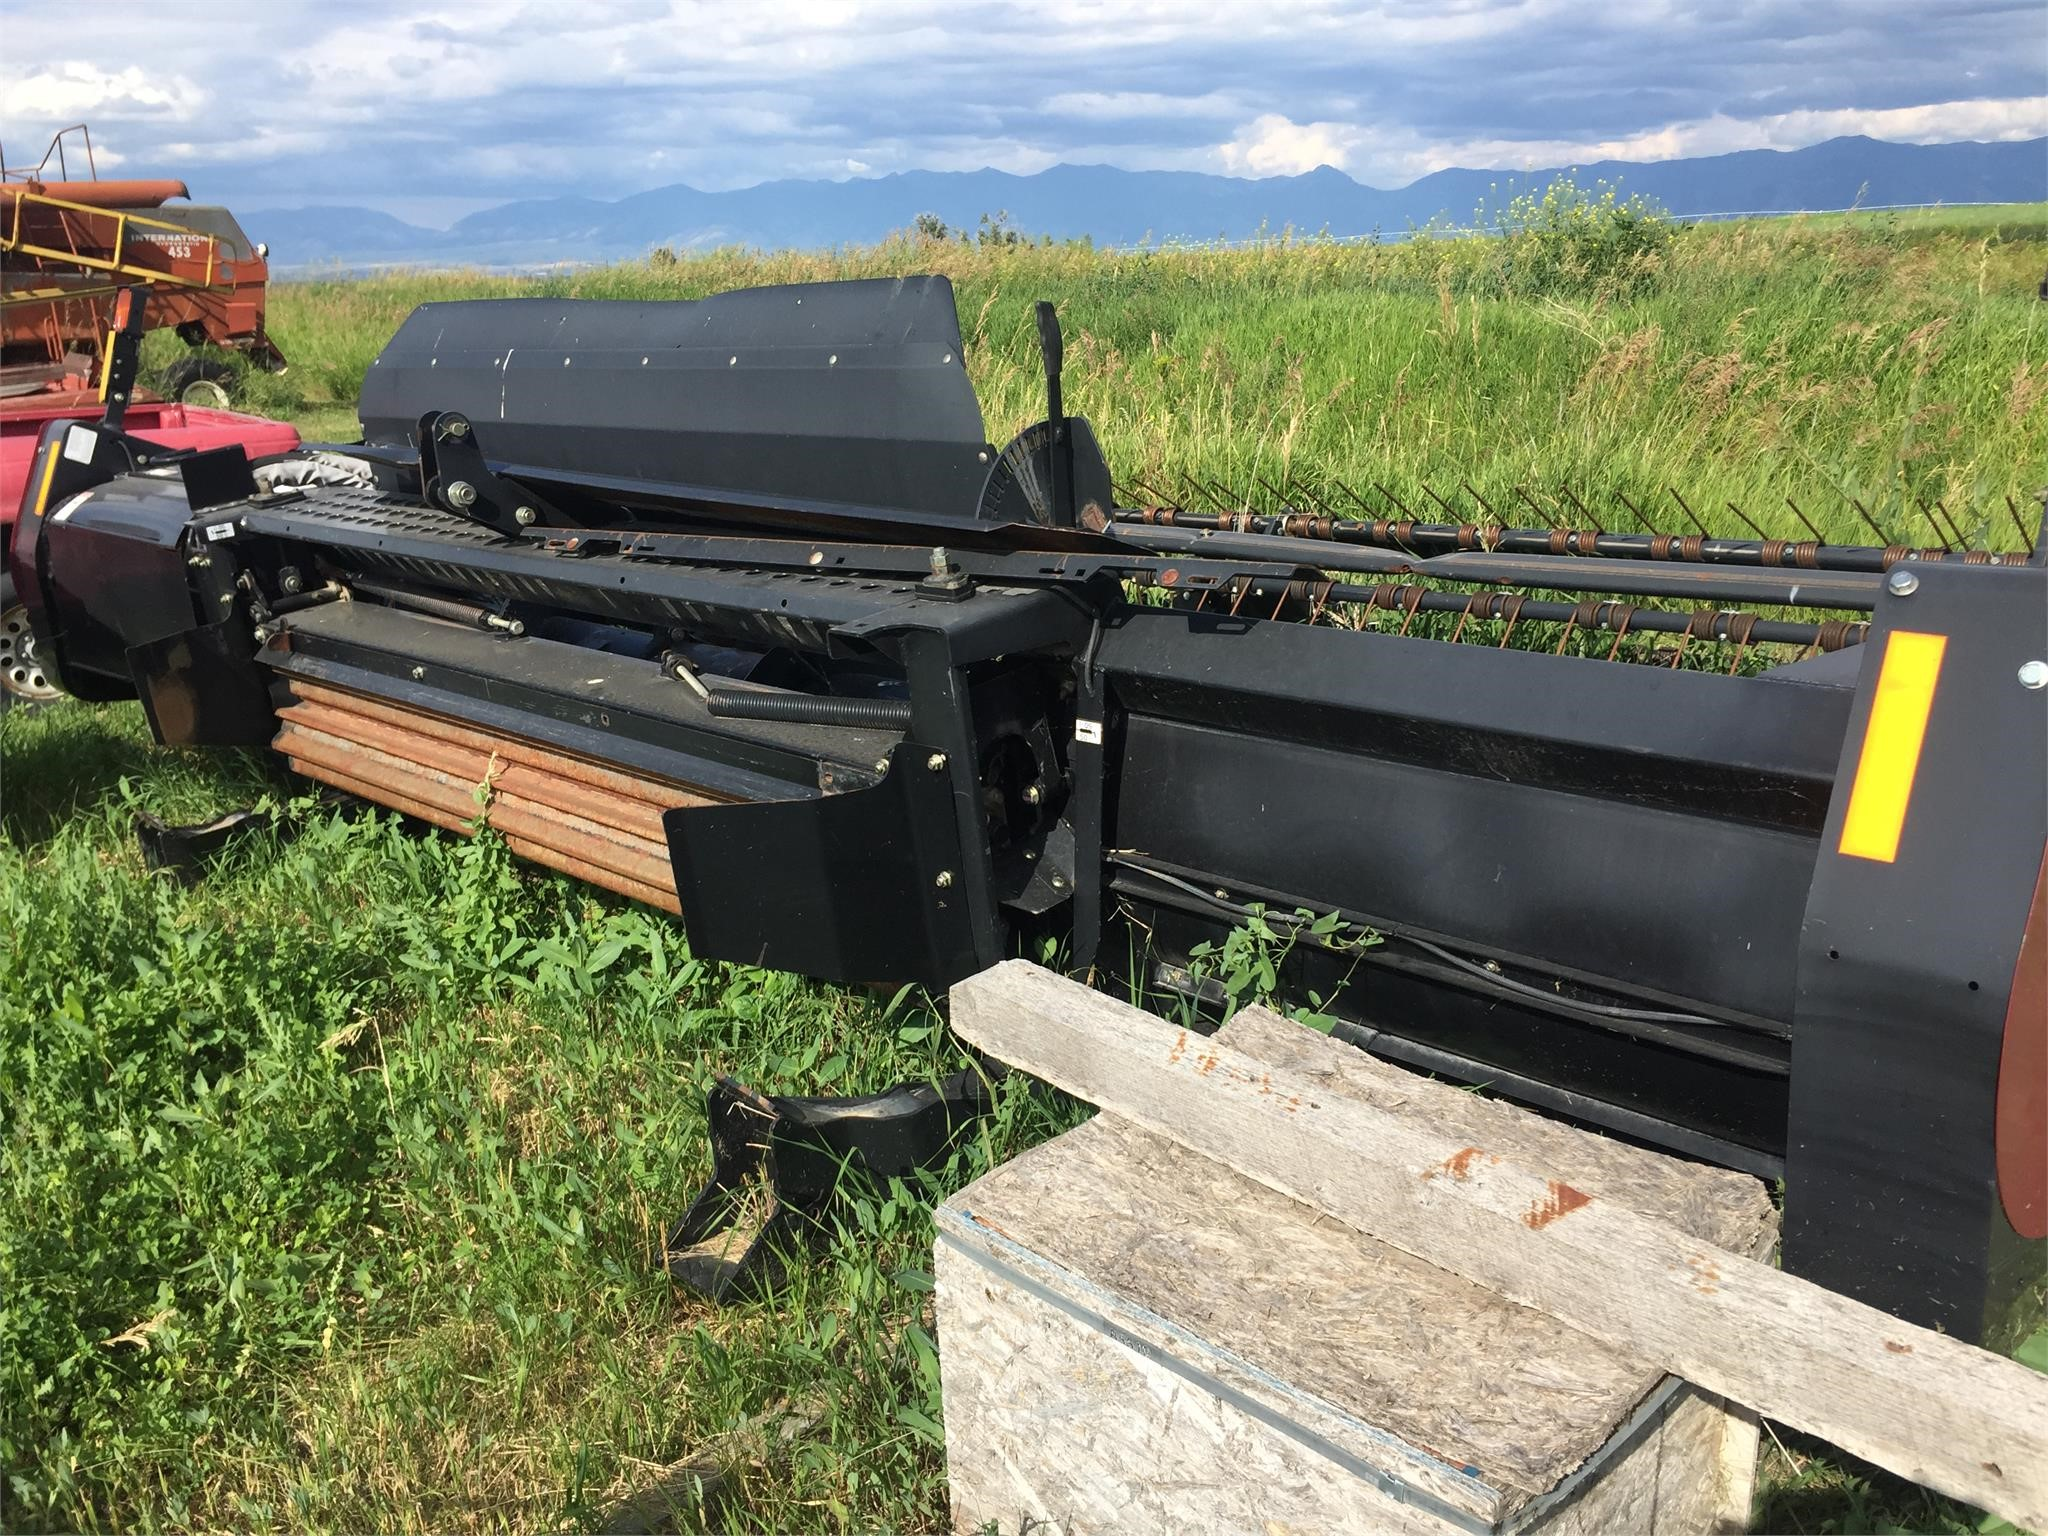 MacDon M150 Self-Propelled Windrowers and Swather